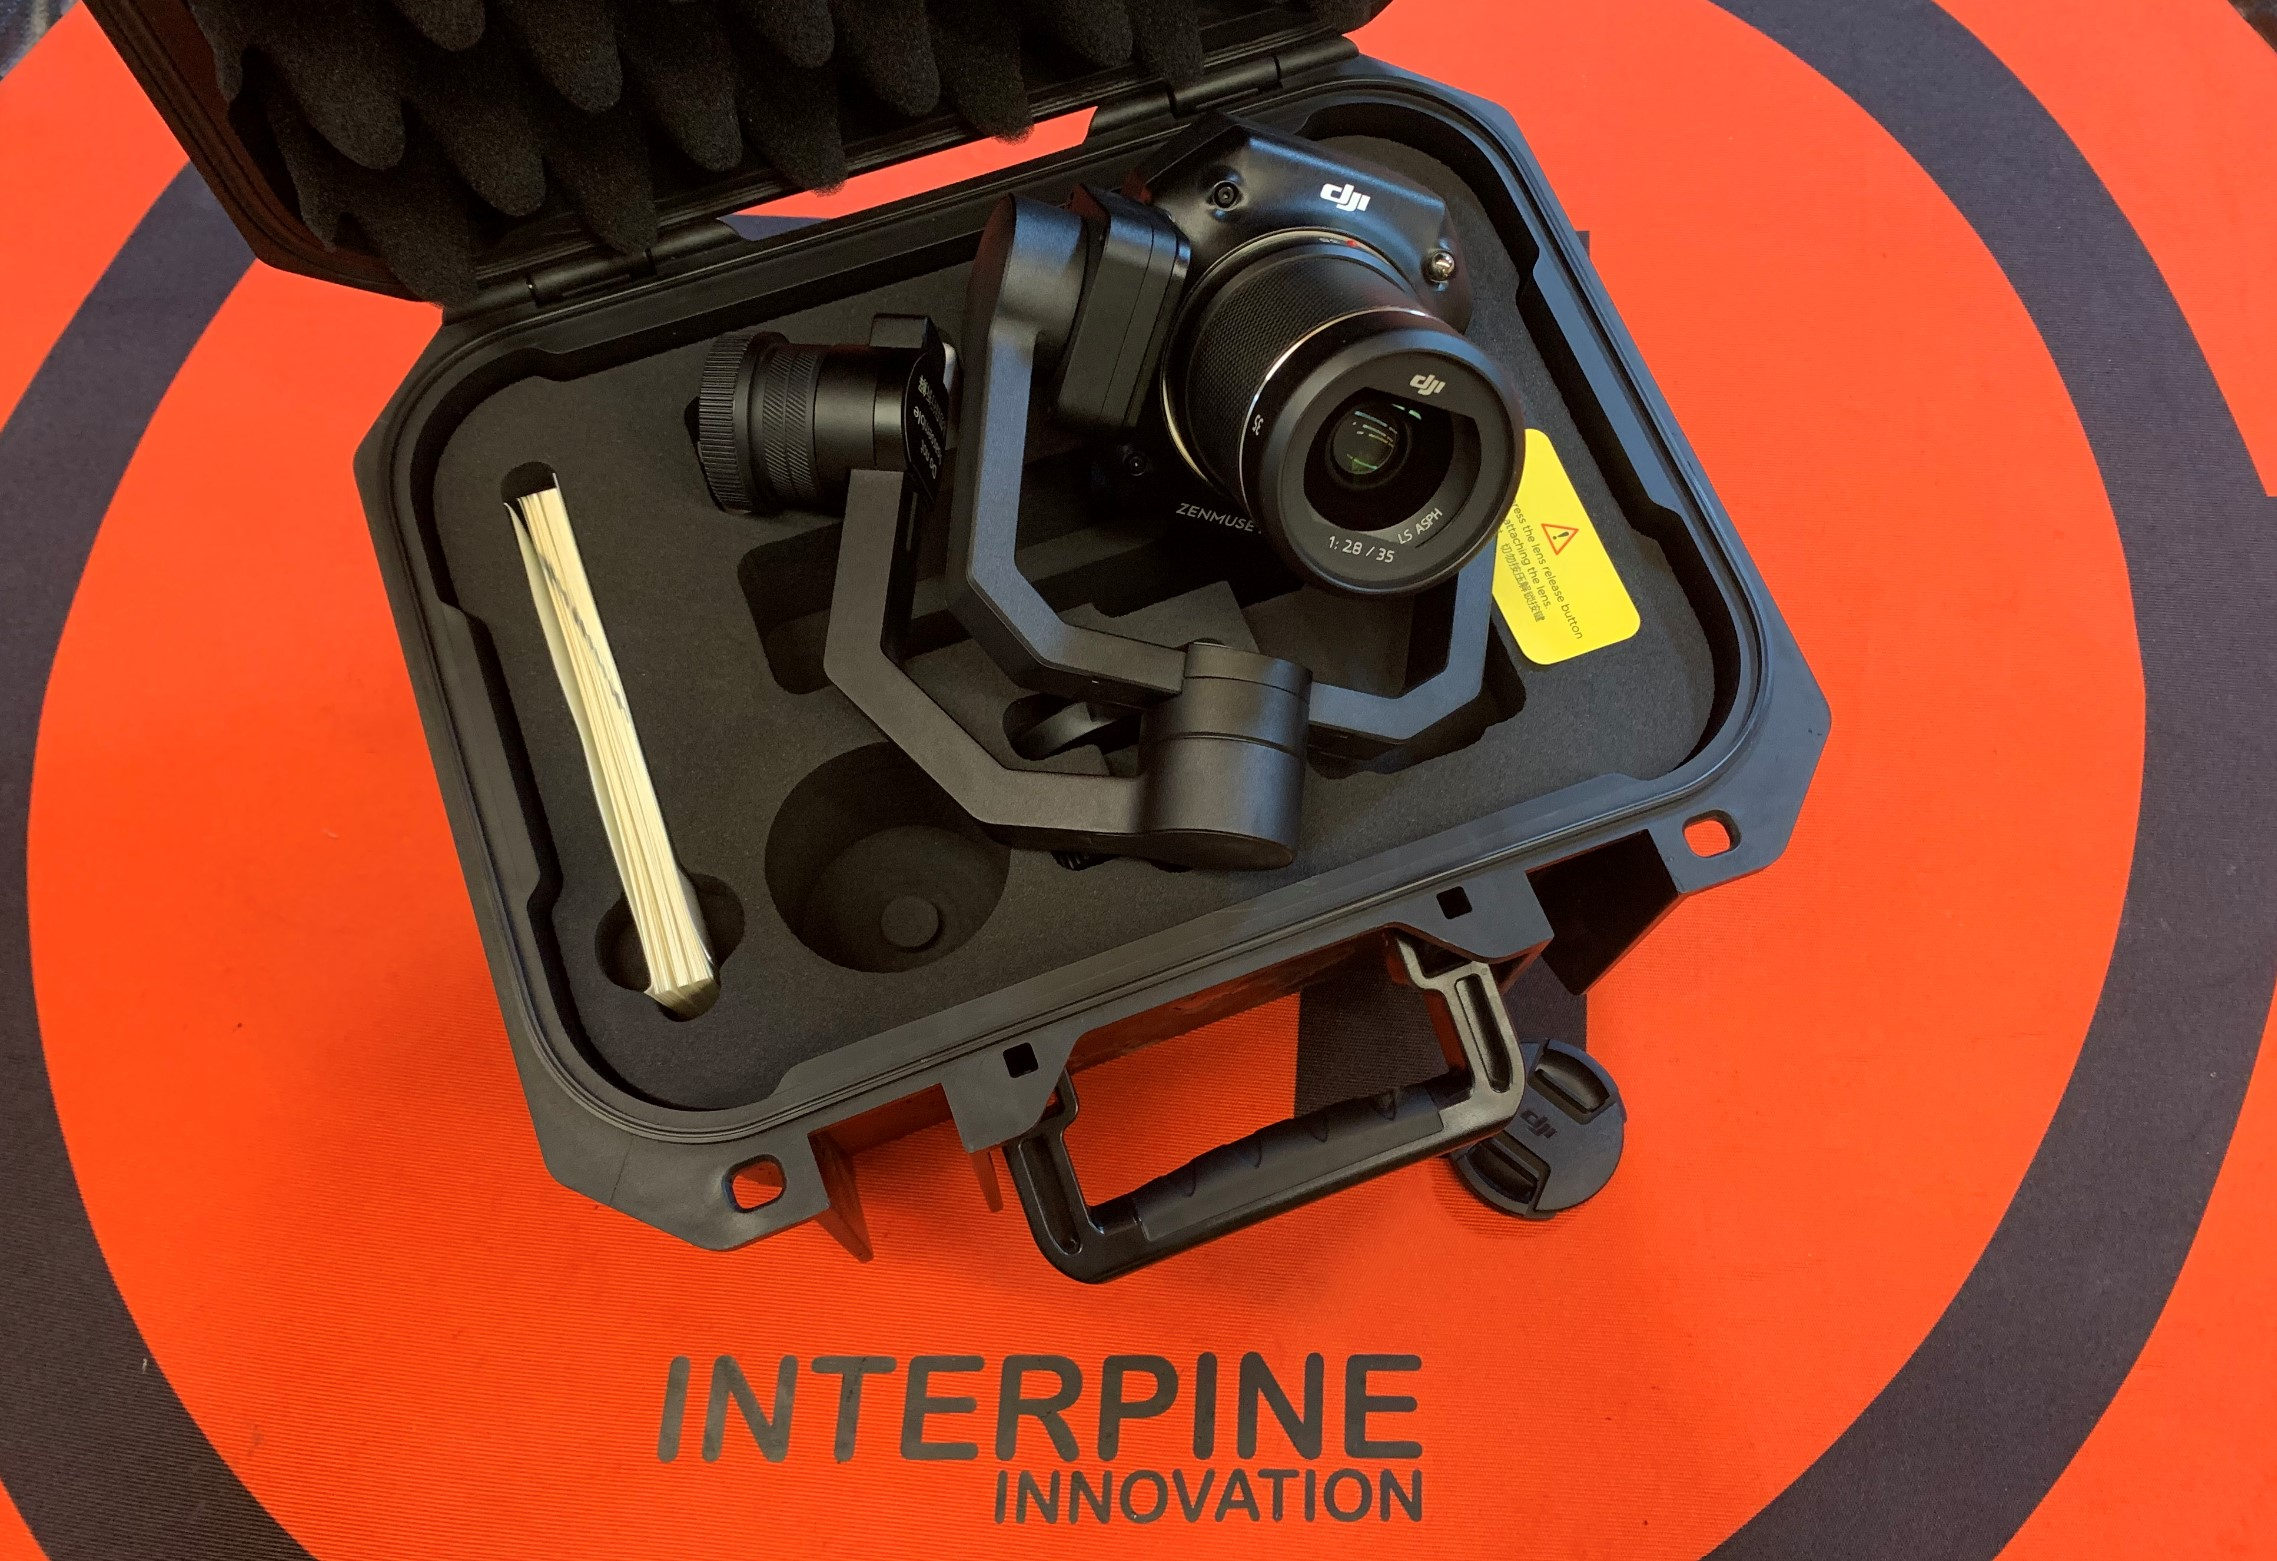 Interpine DJI Zenmuse P1